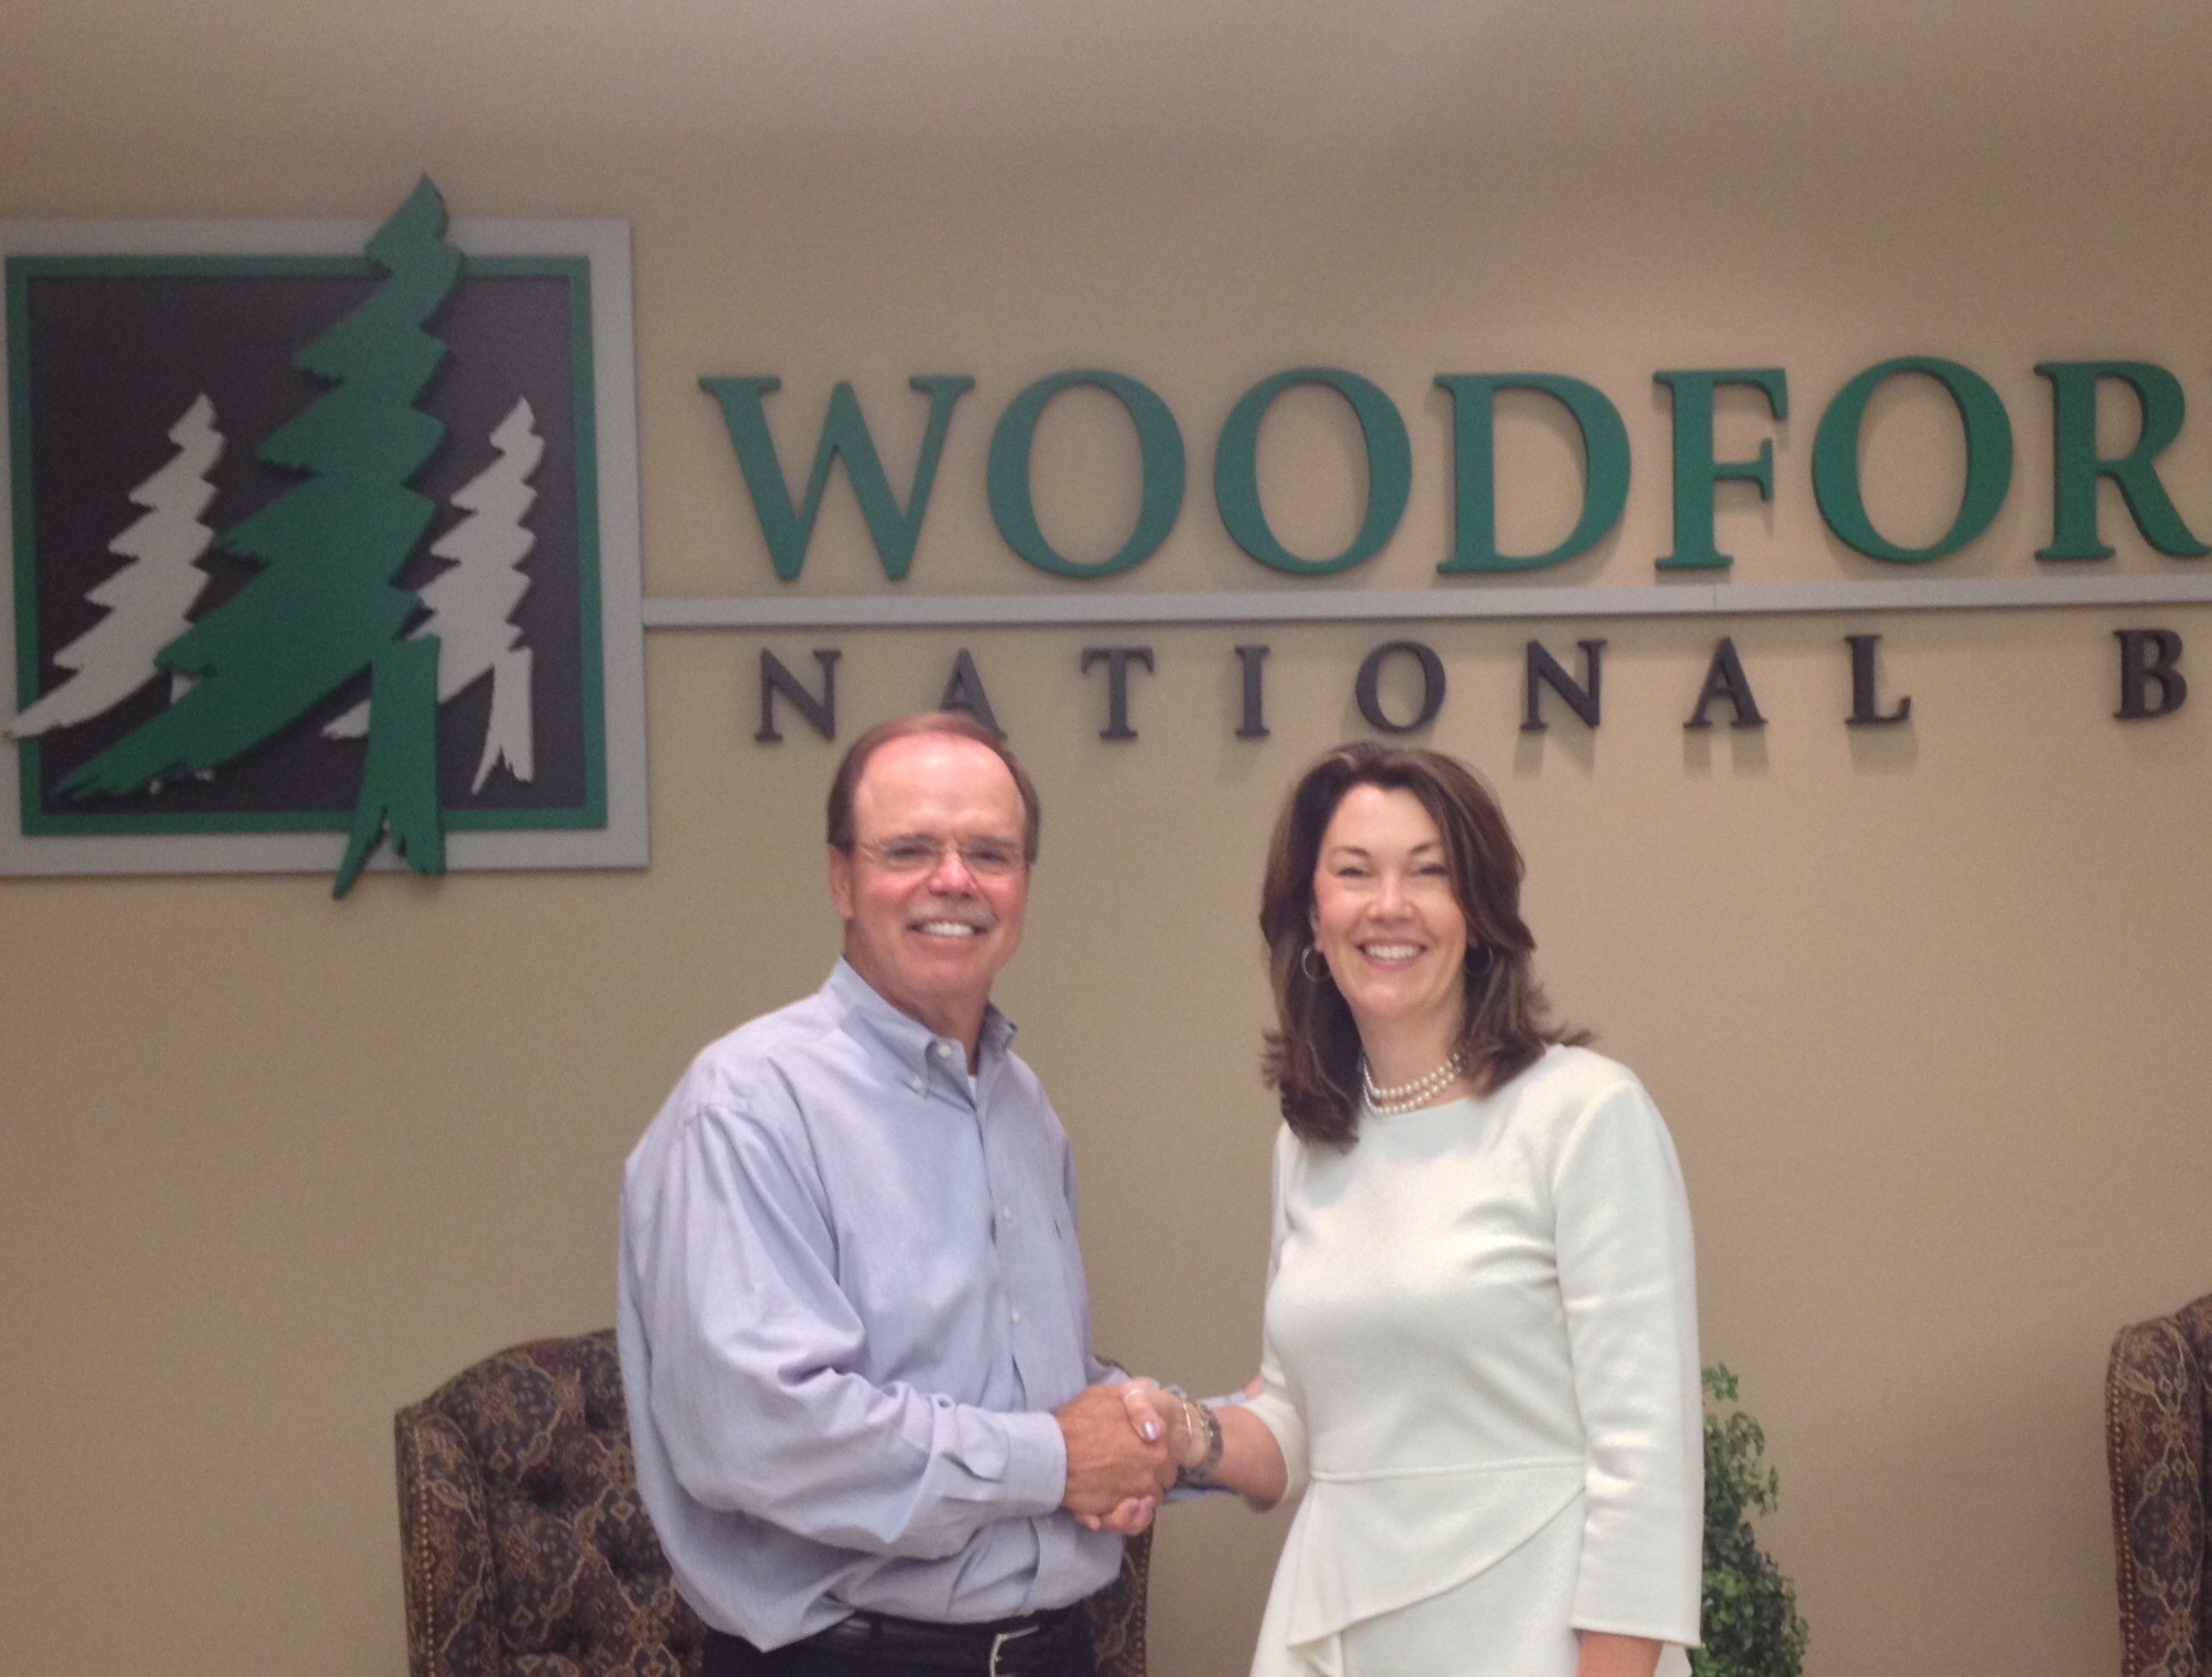 Robert E. Marling, Jr., Chairman and Chief Executive Officer of Woodforest Financial Group, Inc., announced the Board of Directors of Woodforest National Bank has named Cathleen (Cathy) Nash as the bank's President and Chief Executive Officer.